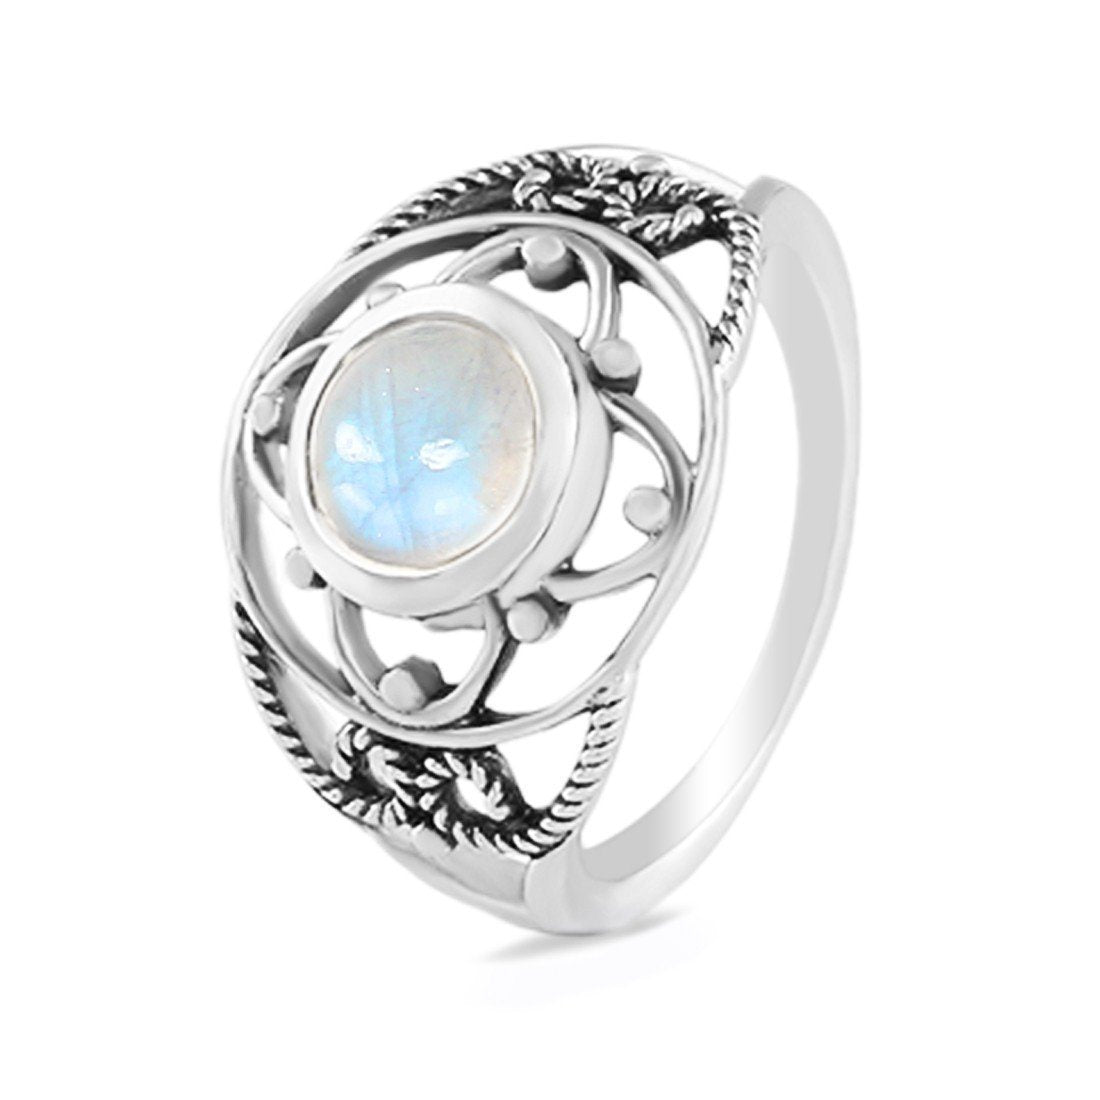 Moonstone Ring-Extended Spectra Sale Item 925 SILVER & MOONSTONE